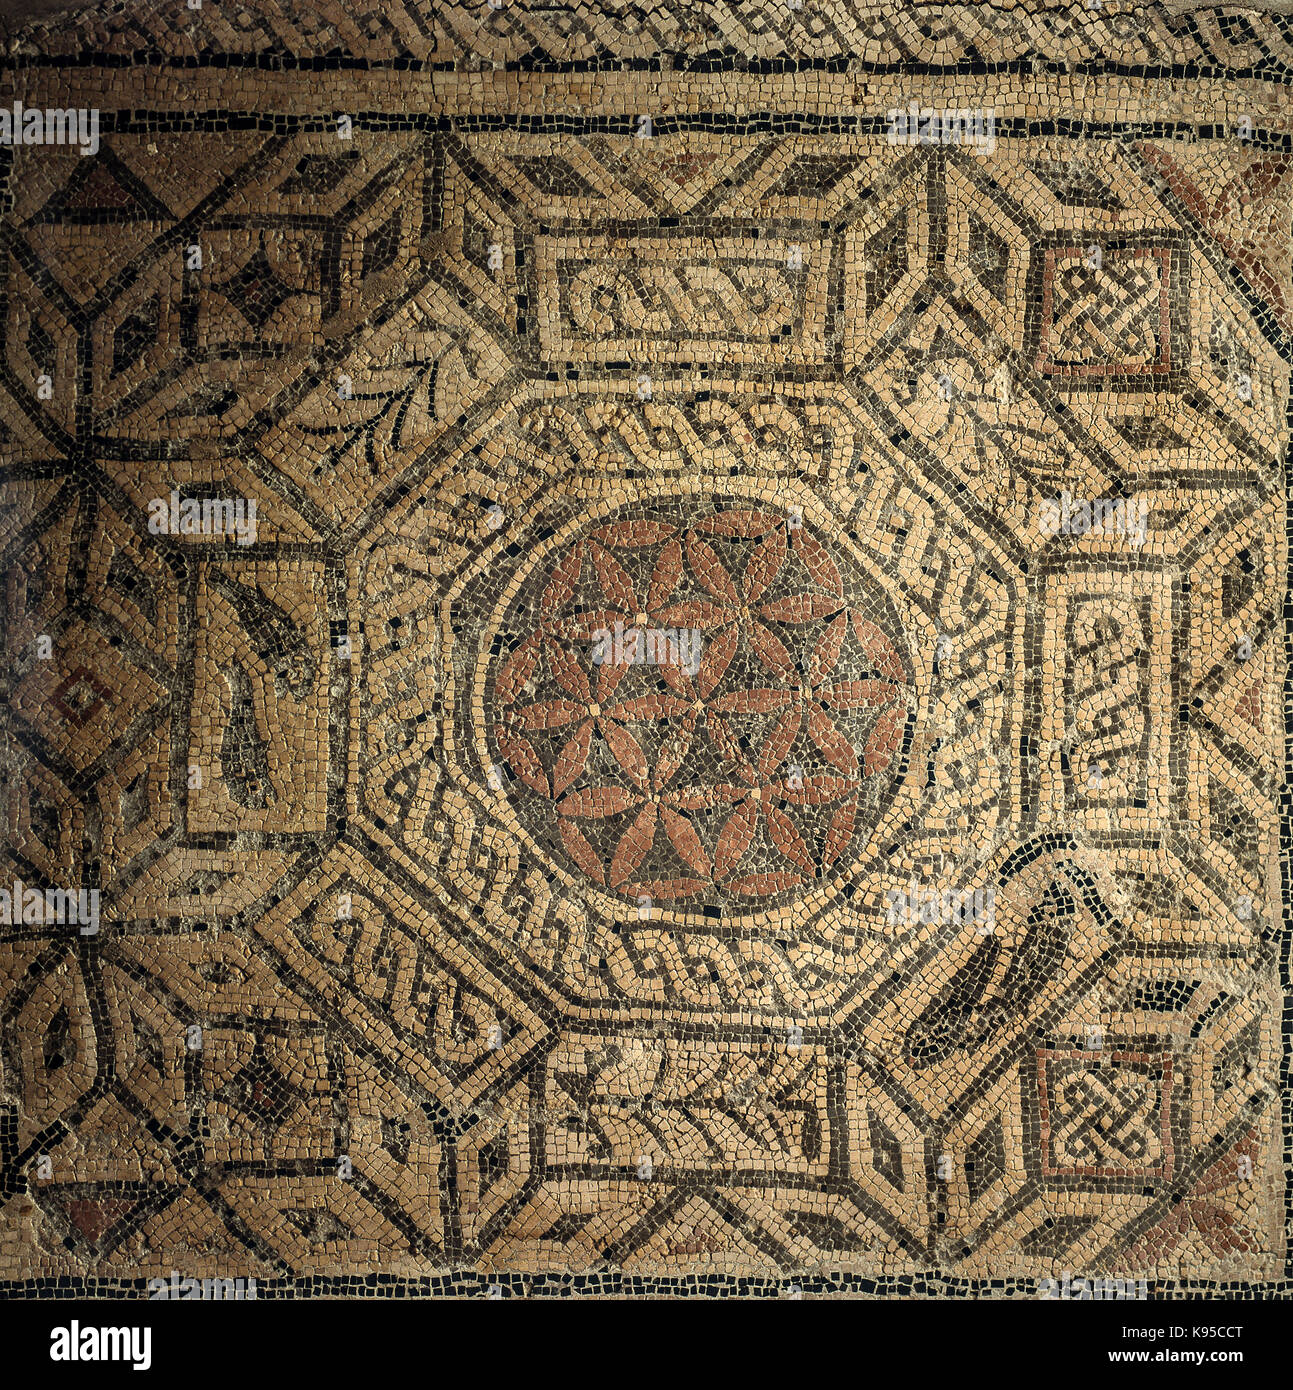 Italy Marche San Severino Marche Archaeological Museum - polychrome mosaic from Pieve  II century a.c. - Stock Image